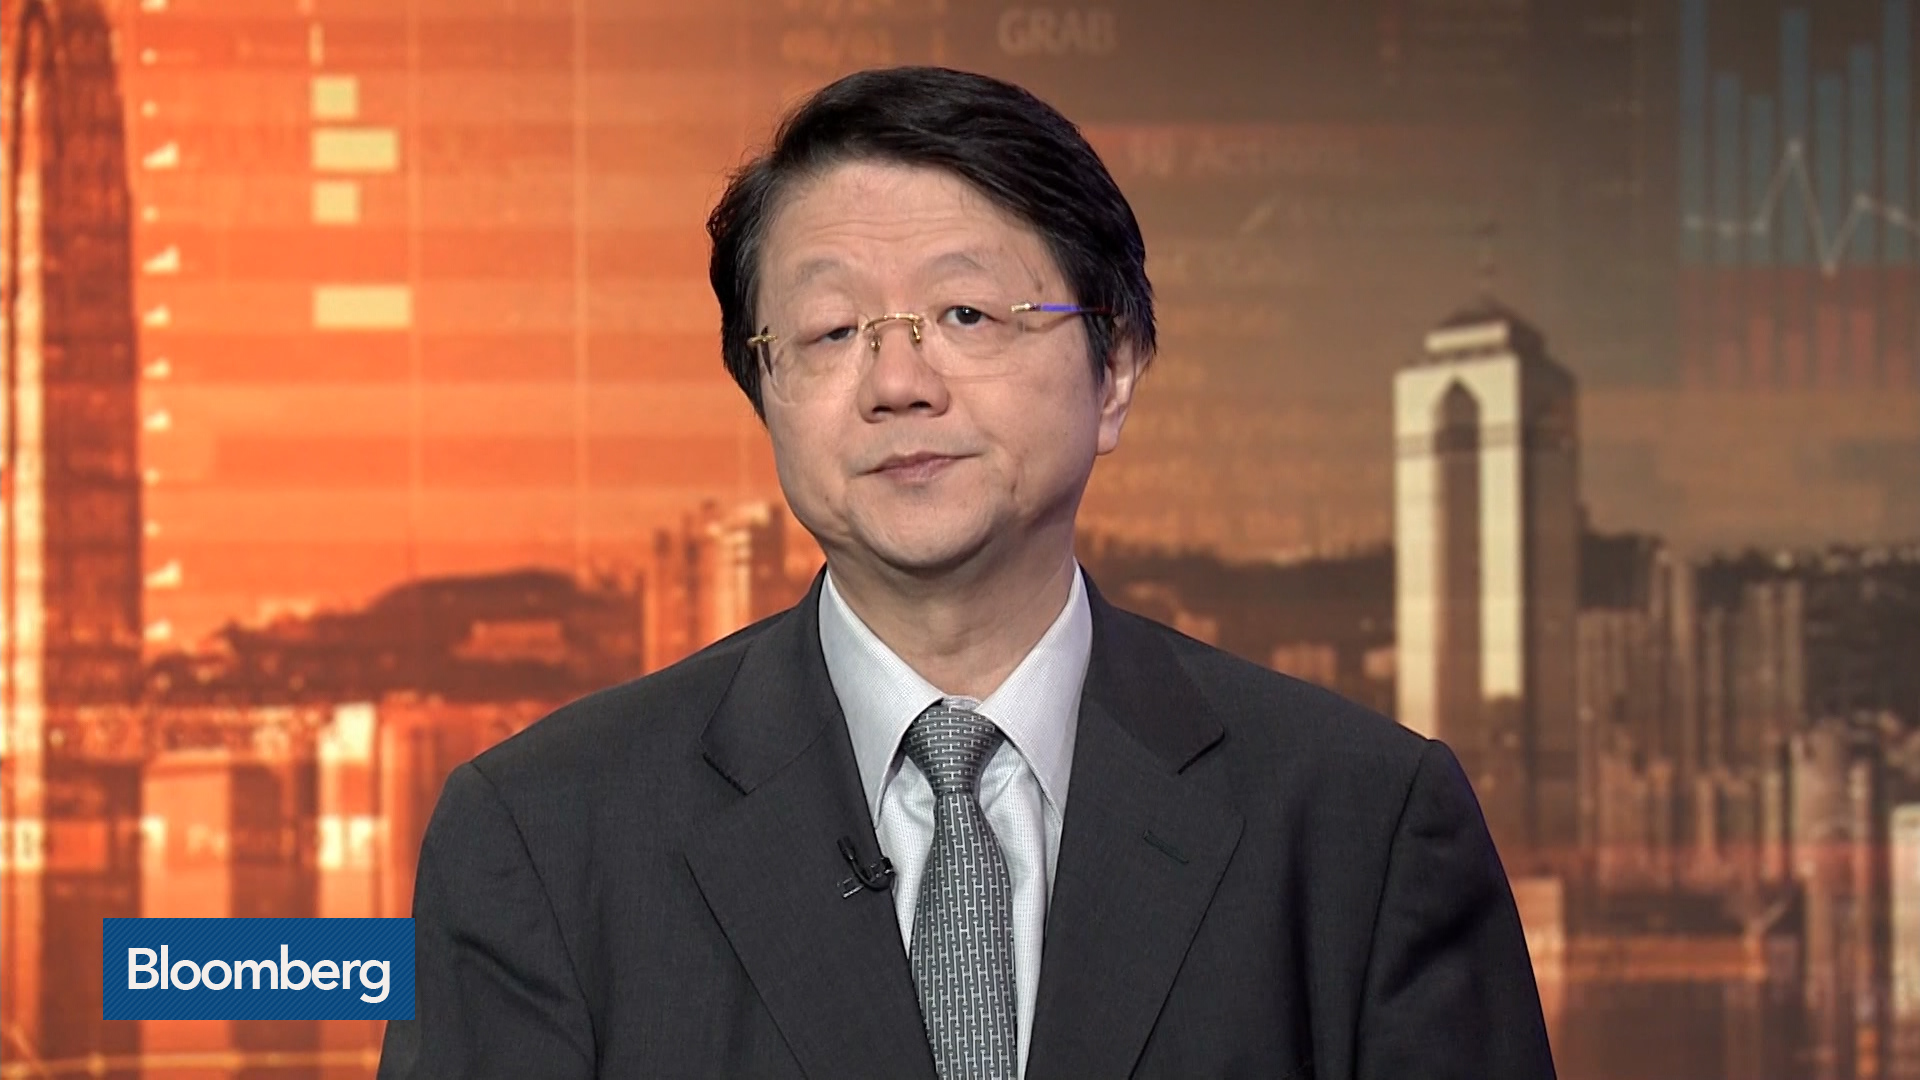 China's Adjustment for the 10% Tariff May Have Taken Place, Says MUFG's Tan